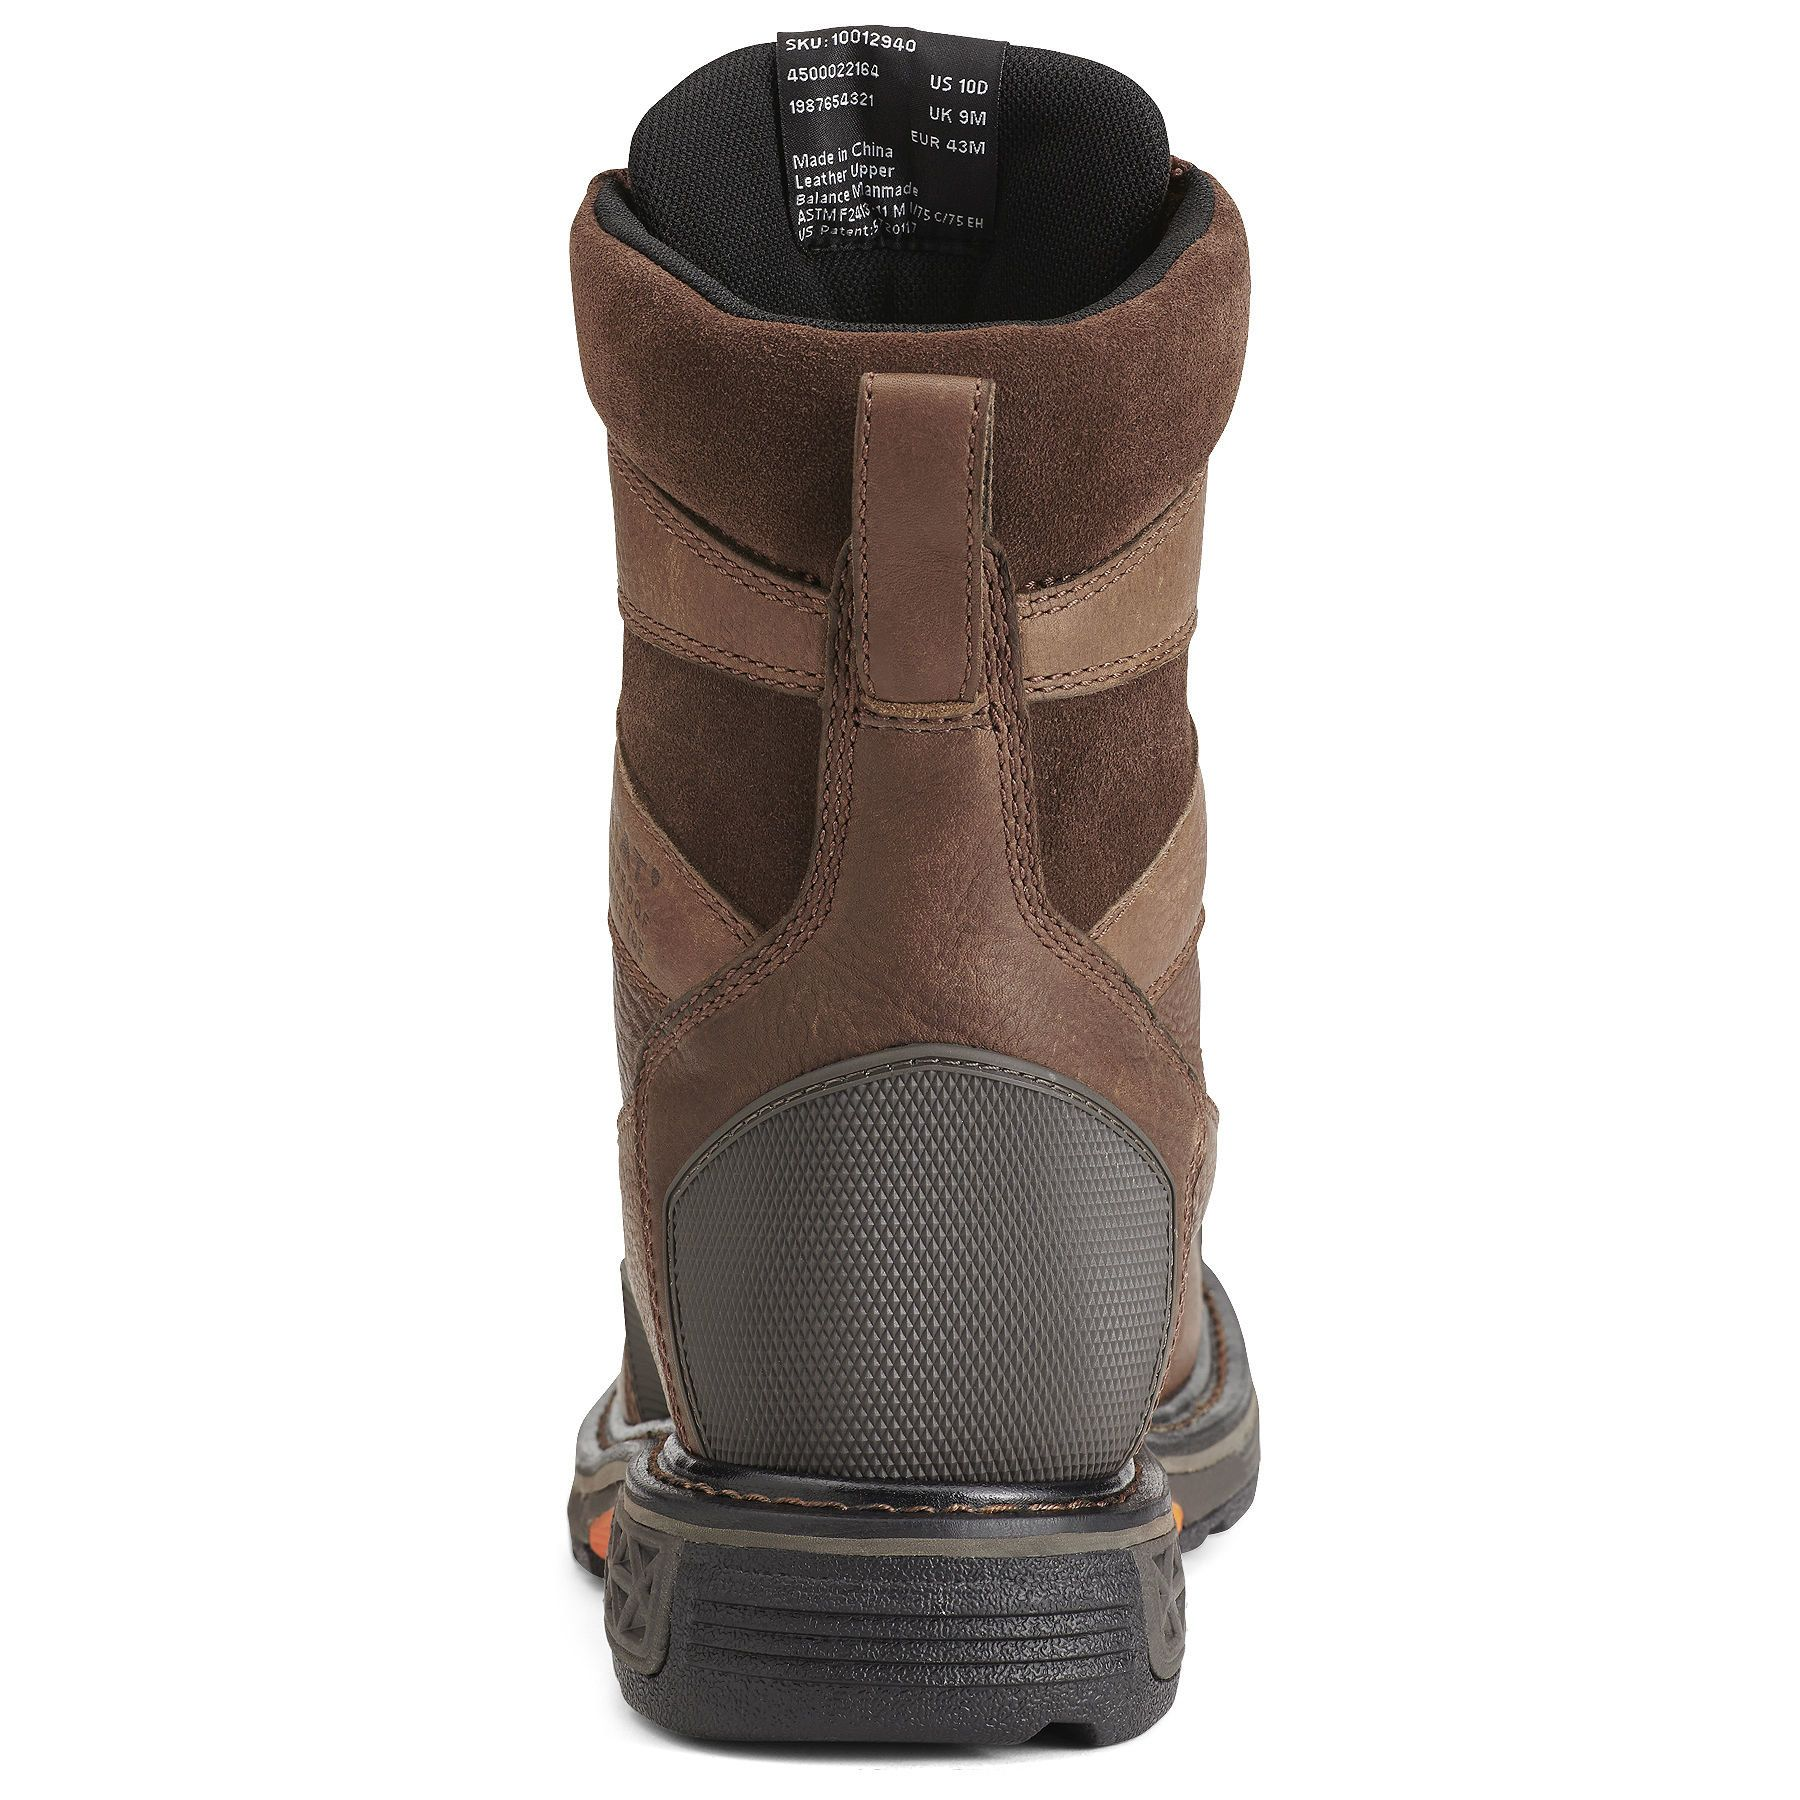 Overdrive 8 Wide Square Toe Waterproof Composite Toe Work Boot Composite Toe Work Boots Boots Brown Leather